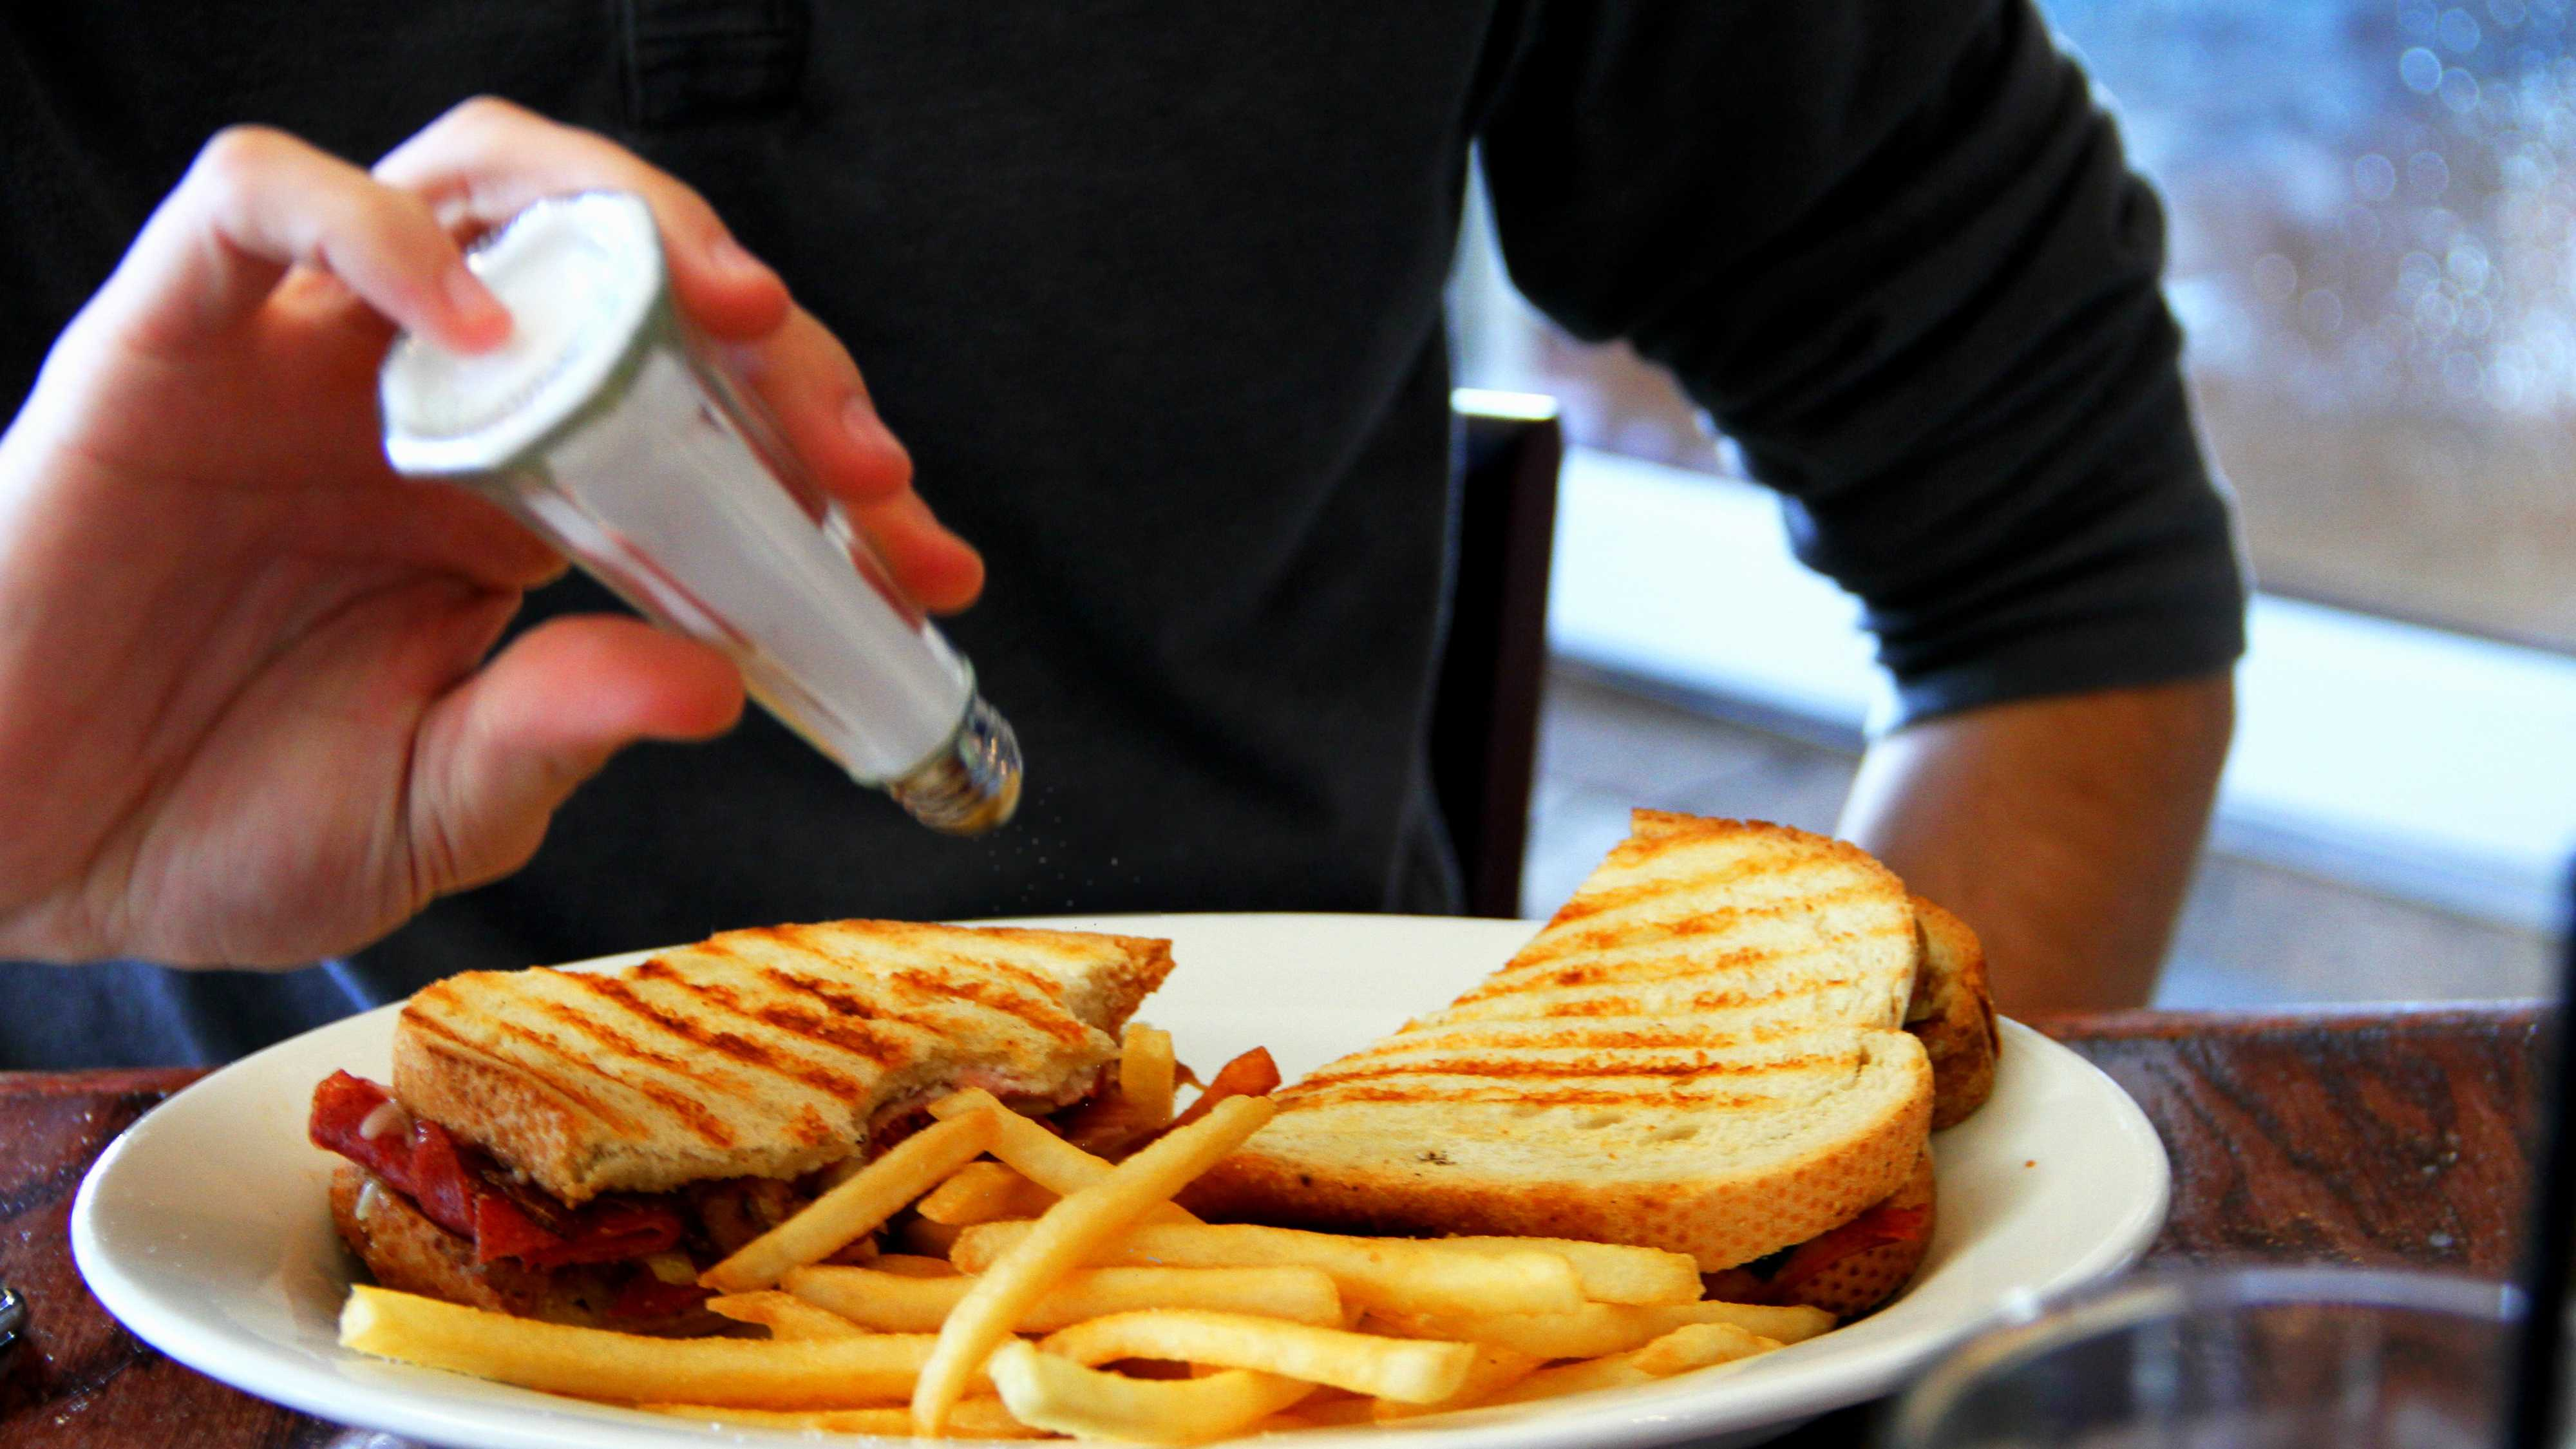 If all Americans consumed only the recommended dose of sodium daily, 150,000 lives would be saved from heart disease, according to the American Medical Association.